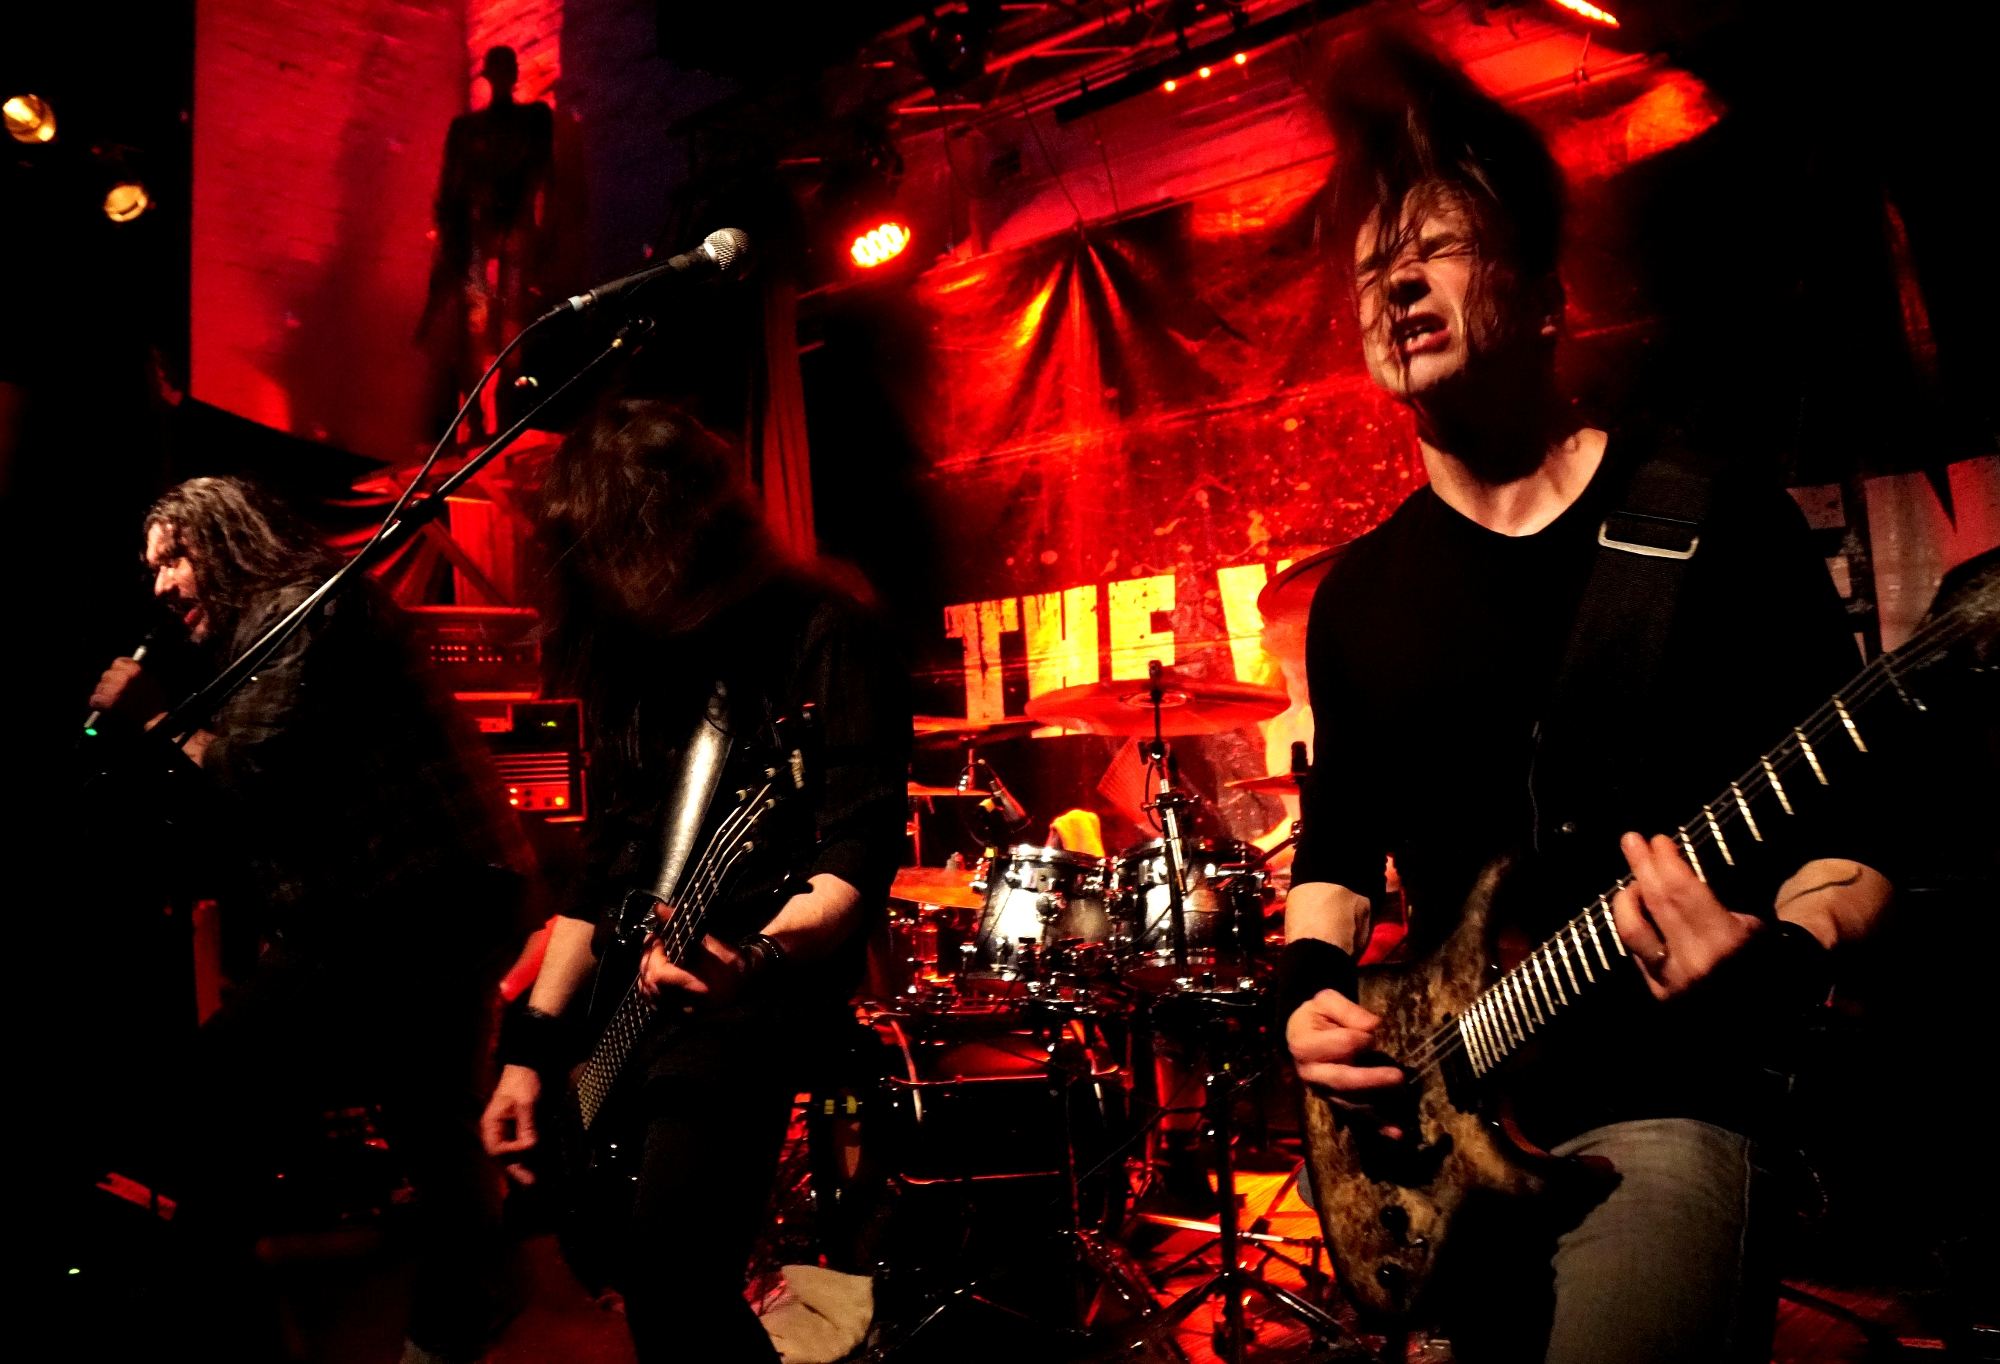 The-Very-End-live-Kulturrampe-Krefeld-2019-06